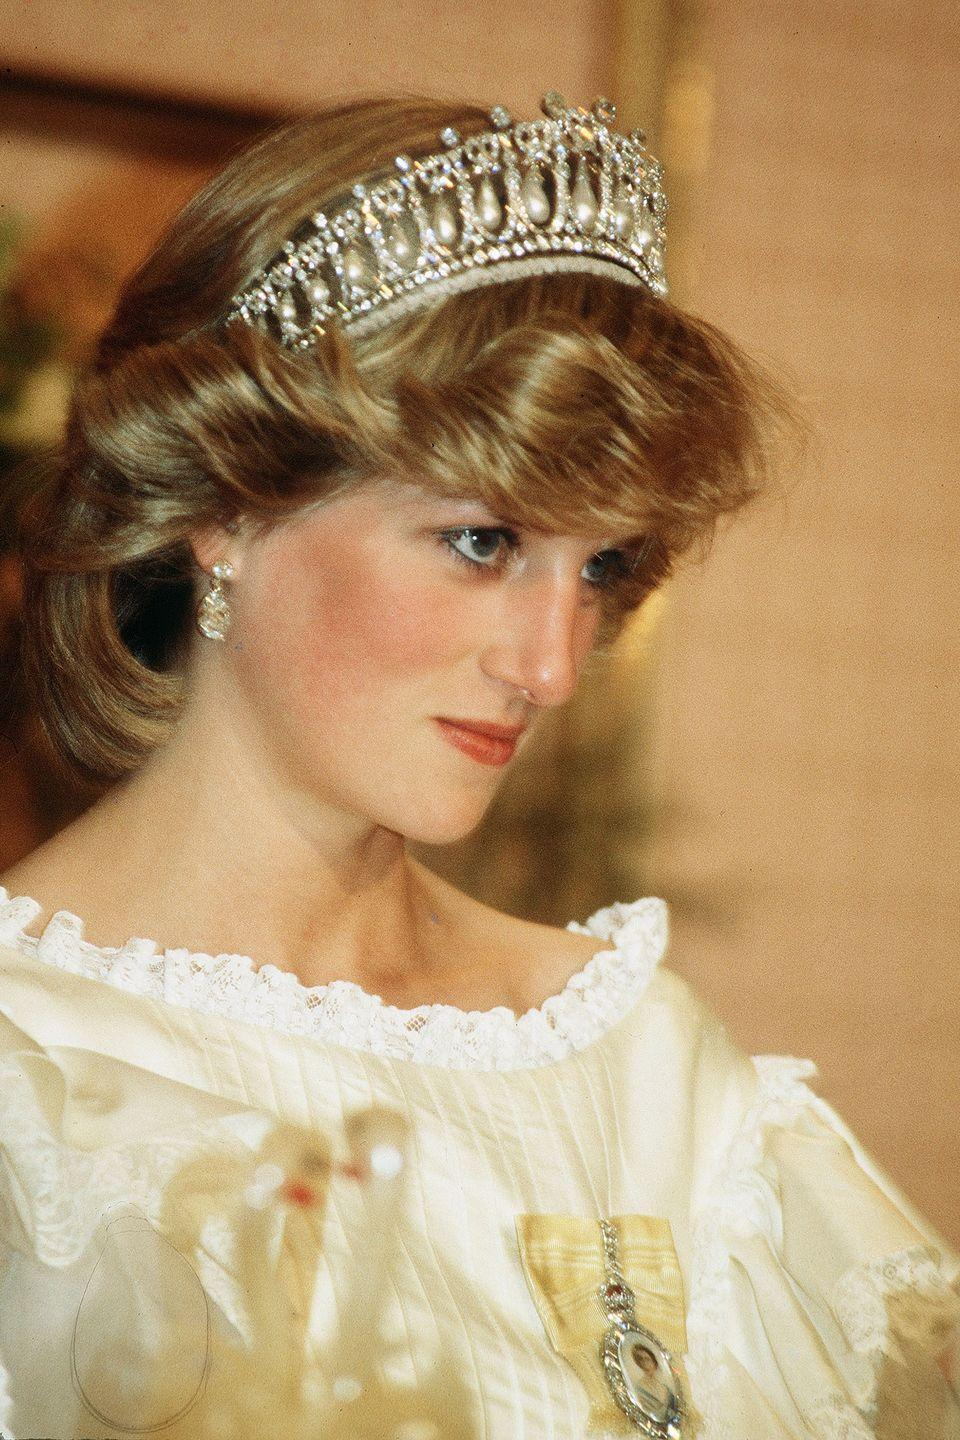 <p>Also known as Queen Mary's Lover's Knot tiara, this diamond and pearl headpiece was commissioned by Queen Mary in 1913 when she had asked British jeweler Garrard to replicate a tiara owned by her grandmother, Princess Augusta of Hesse-Kassel. It was inherited by the Queen, who gave it to Princess Diana when she married Prince Charles, but it was returned to the Queen after the couple divorced in 1996. Today it is owned by the Queen and remains a favorite with the Duchess of Cambridge, who borrows it for special occasions.</p>